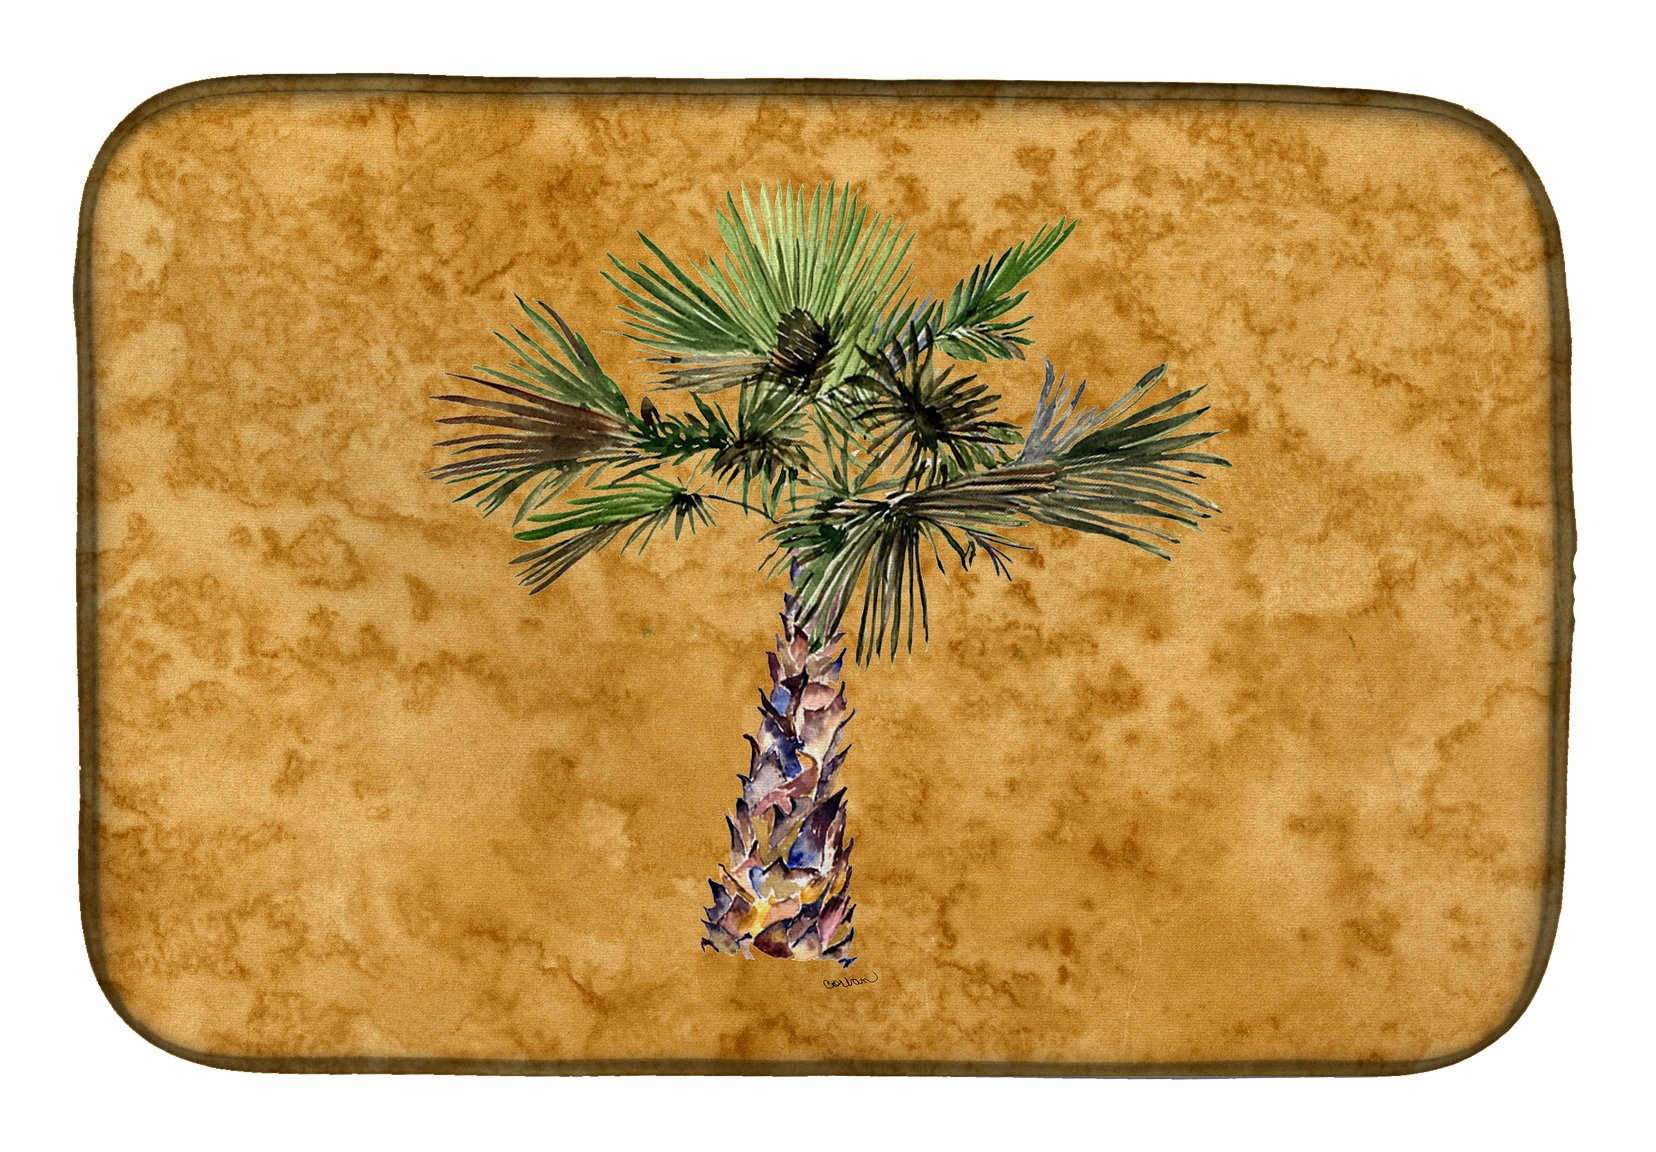 Palm Tree on Gold Dish Drying Mat 8706DDM by Caroline's Treasures